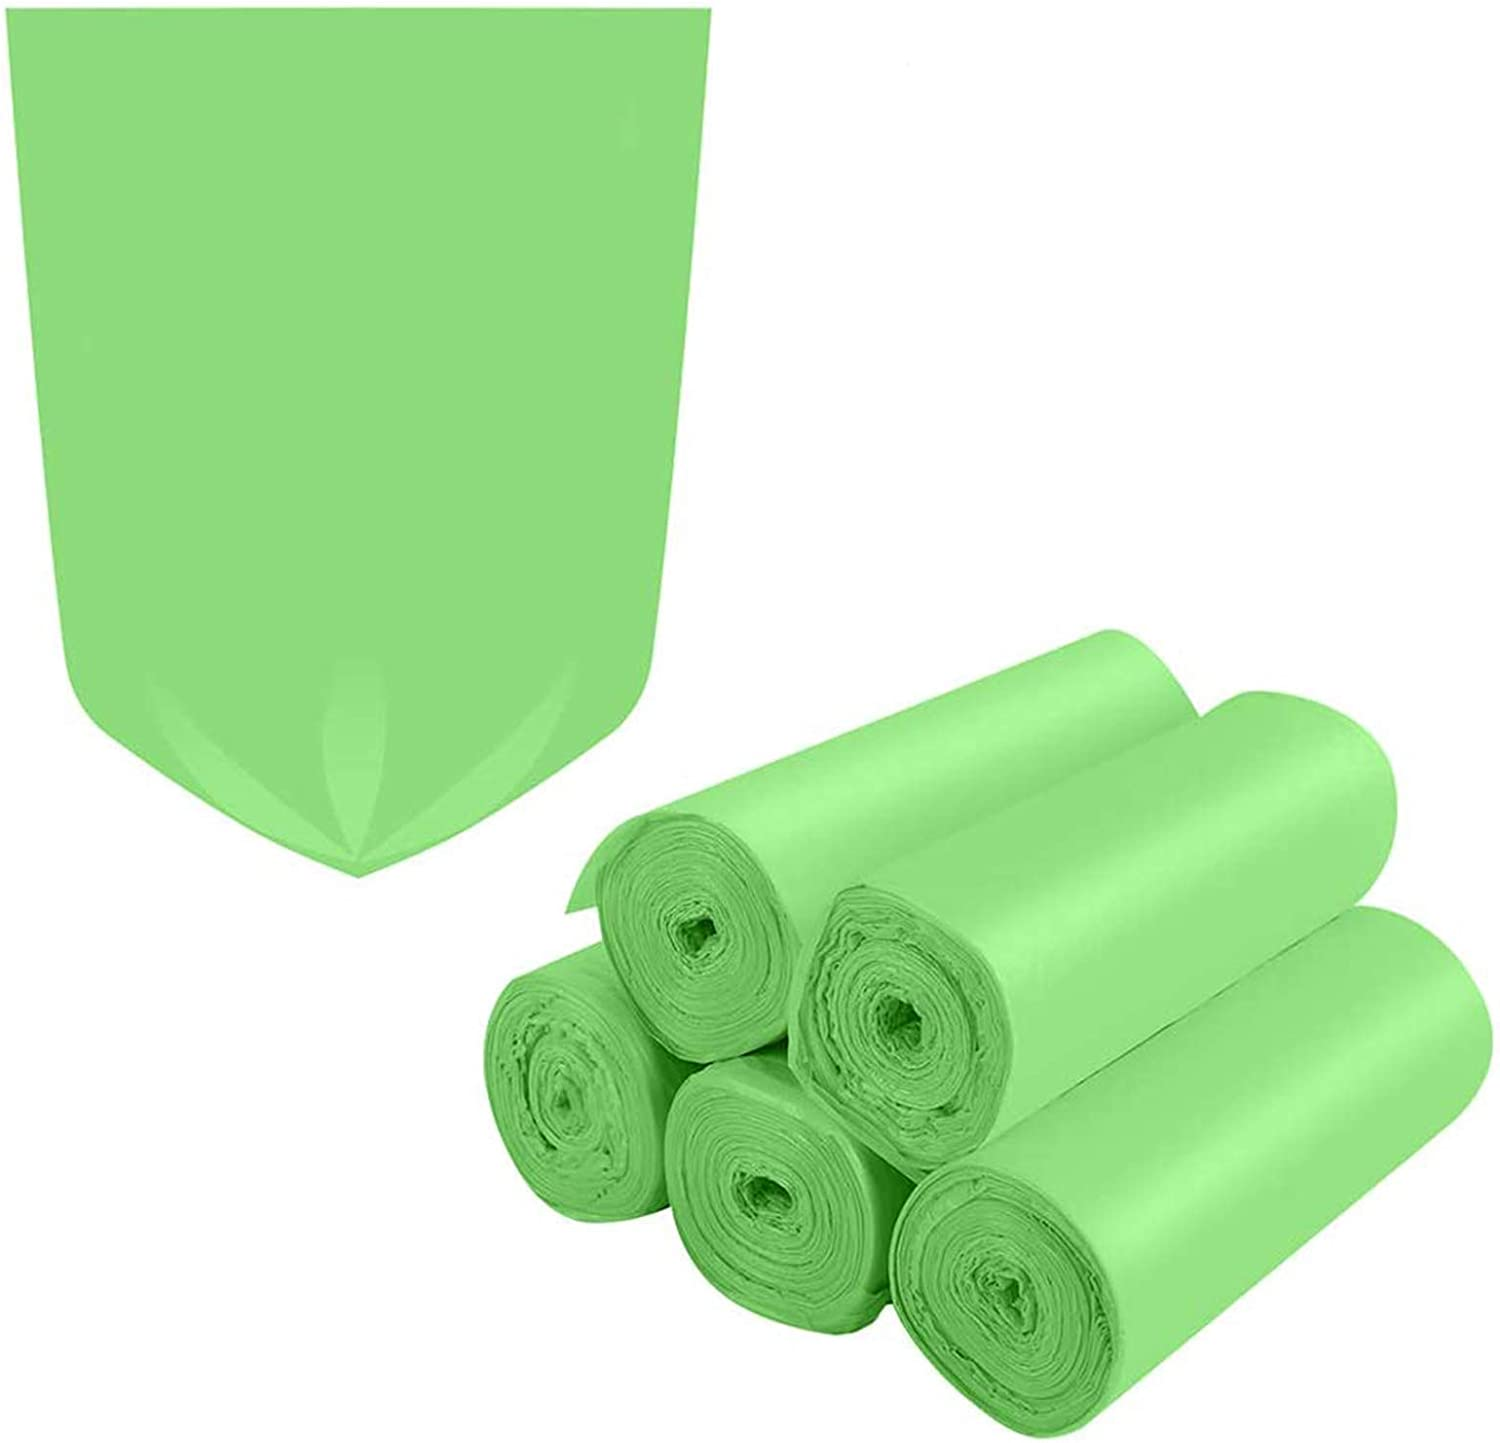 Biodegradable Trash Bags,1.2 Gallon Trash Bags Small Garbage Bags Compostable Recycling Rubbish Bags Unscented Wastebasket Can Liners for Bathroom,Home, Office , Baby diaper(Green, 125 Counts)